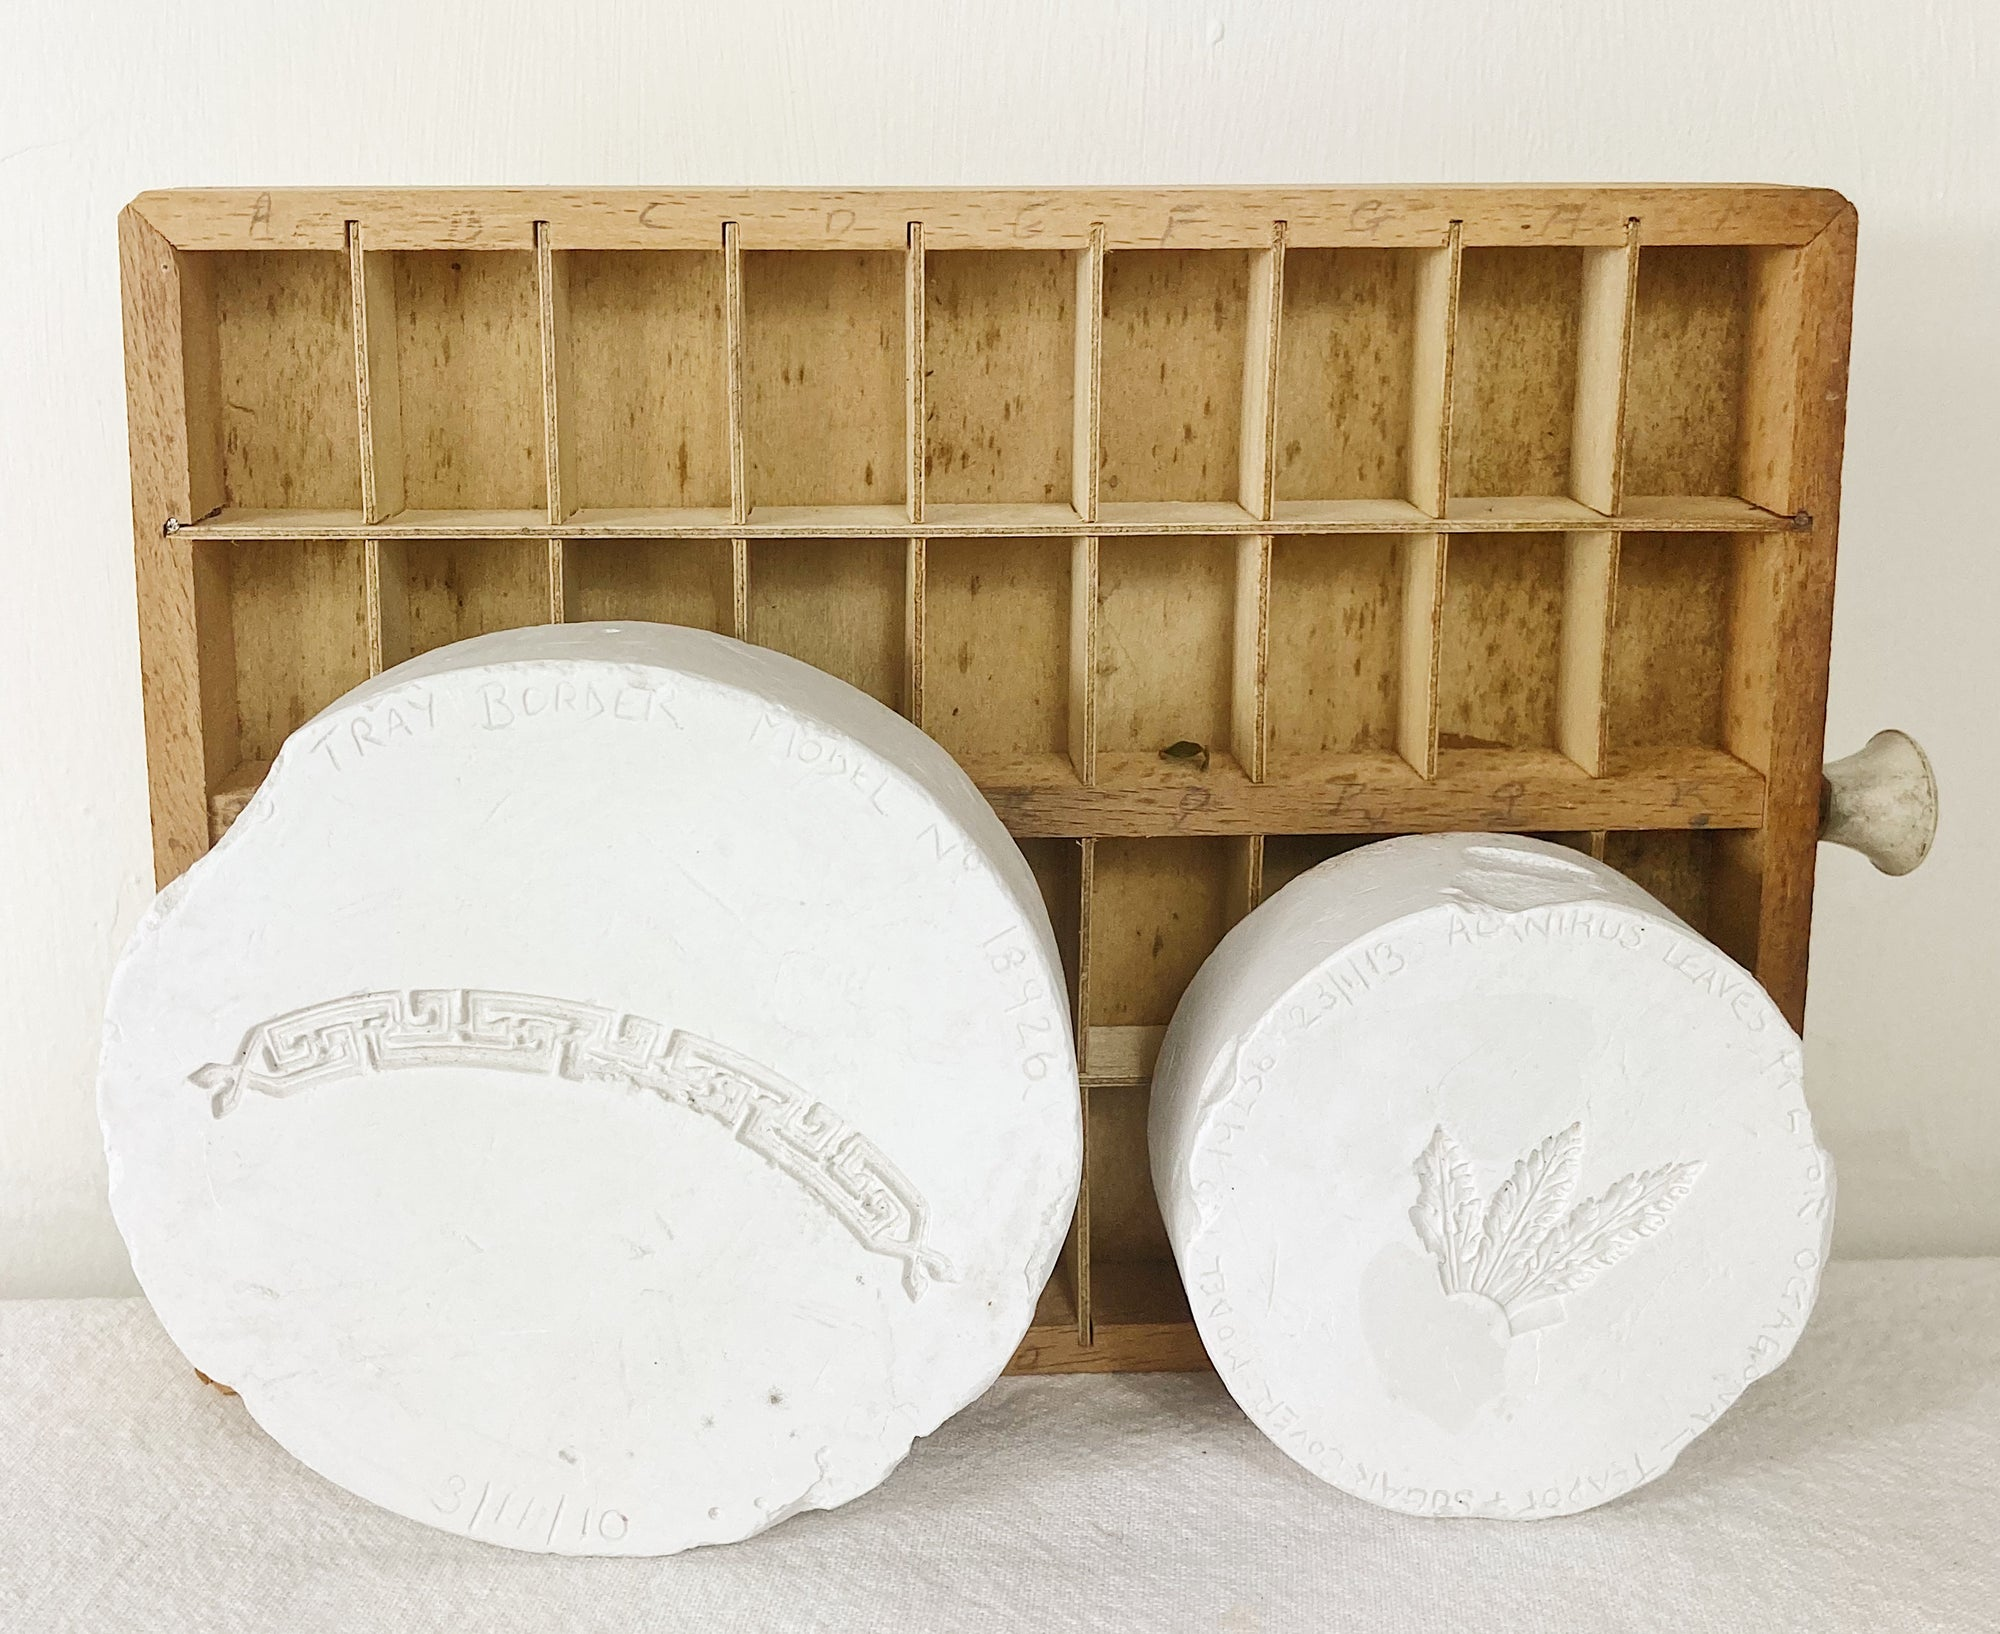 Wedgwood plaster moulds